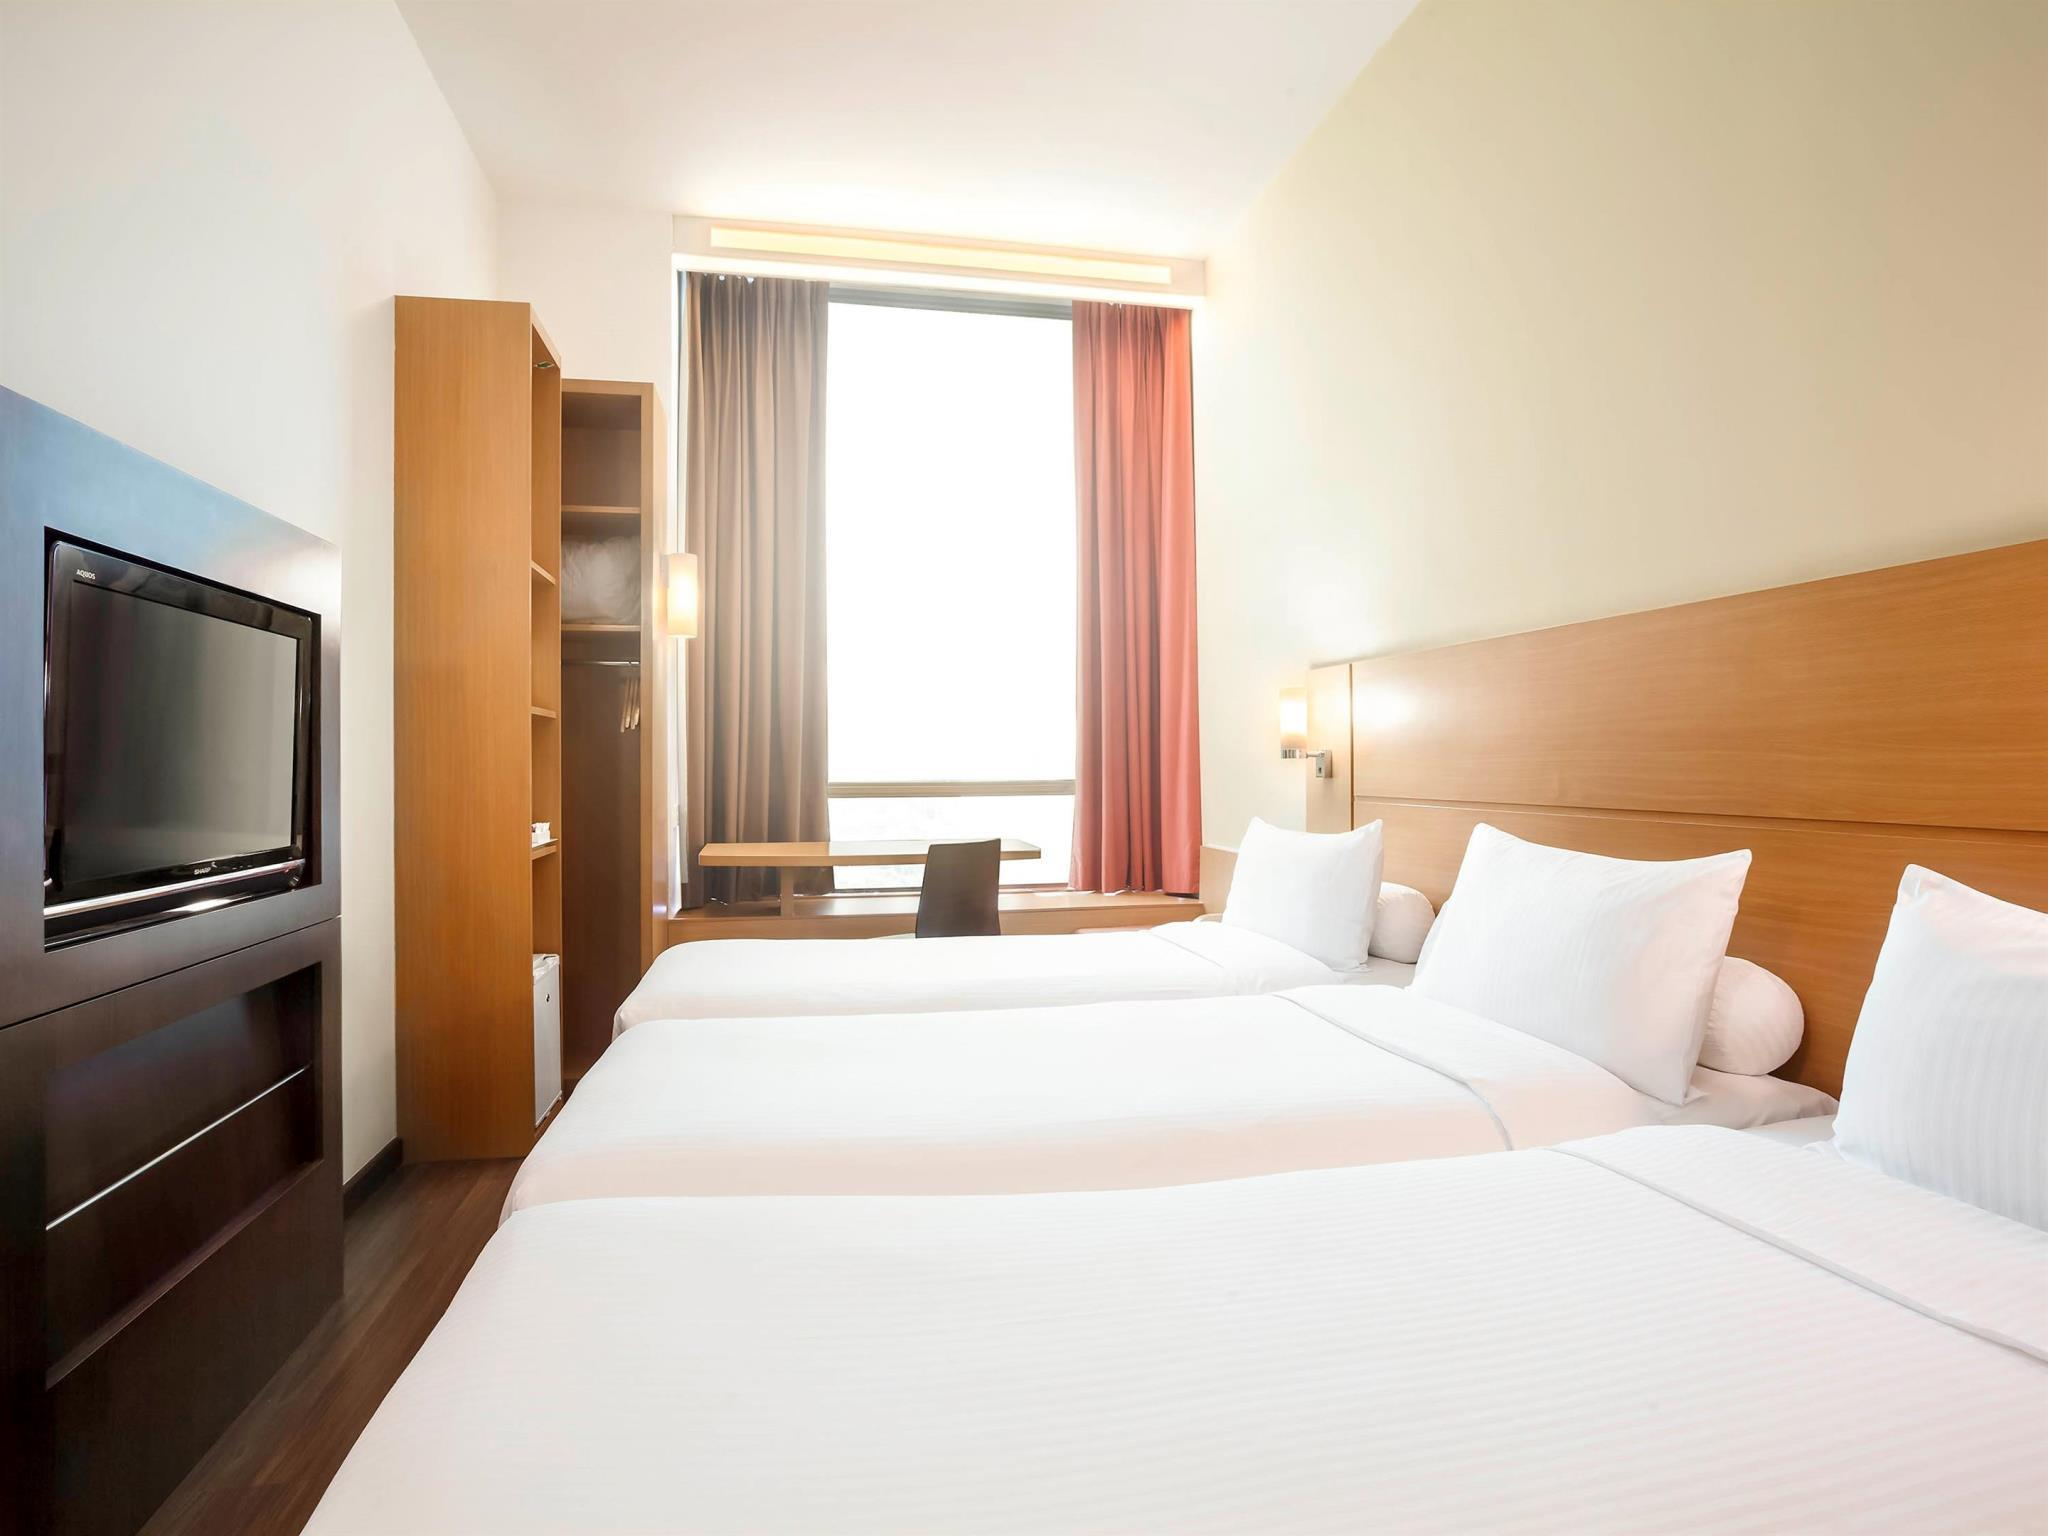 Days Hotel Twin Beds Room Singapore